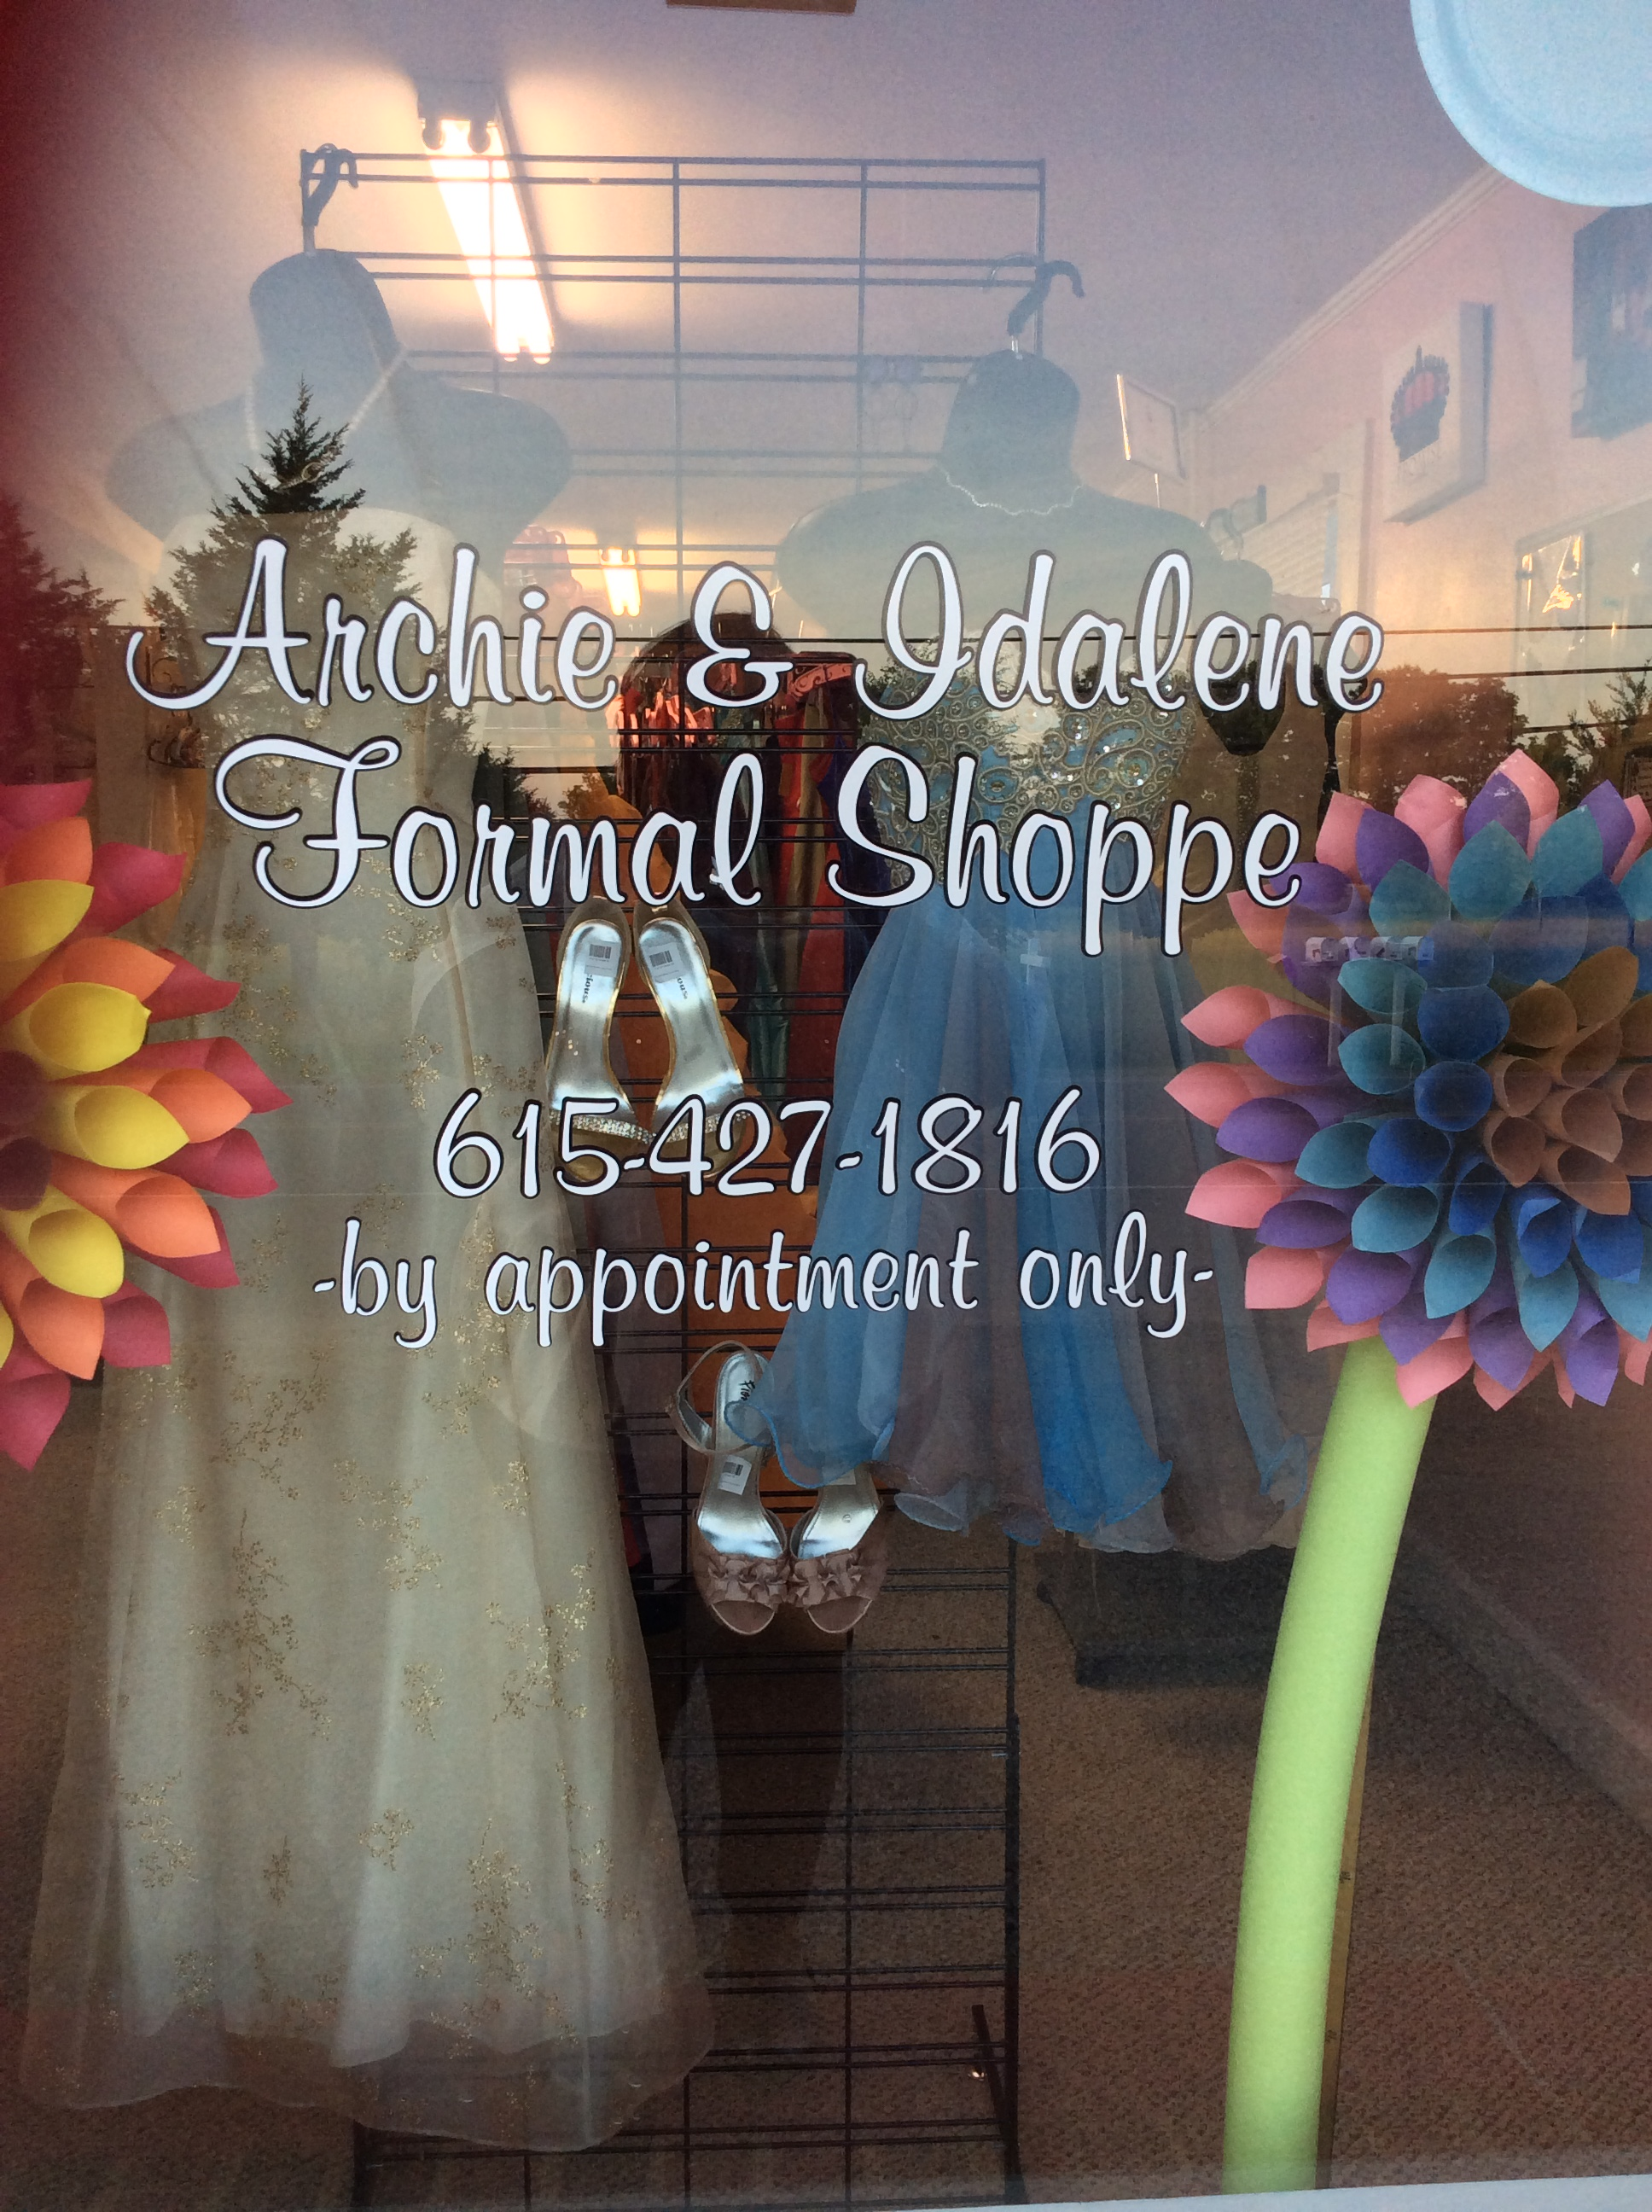 archie & idalene Formal Shoppe